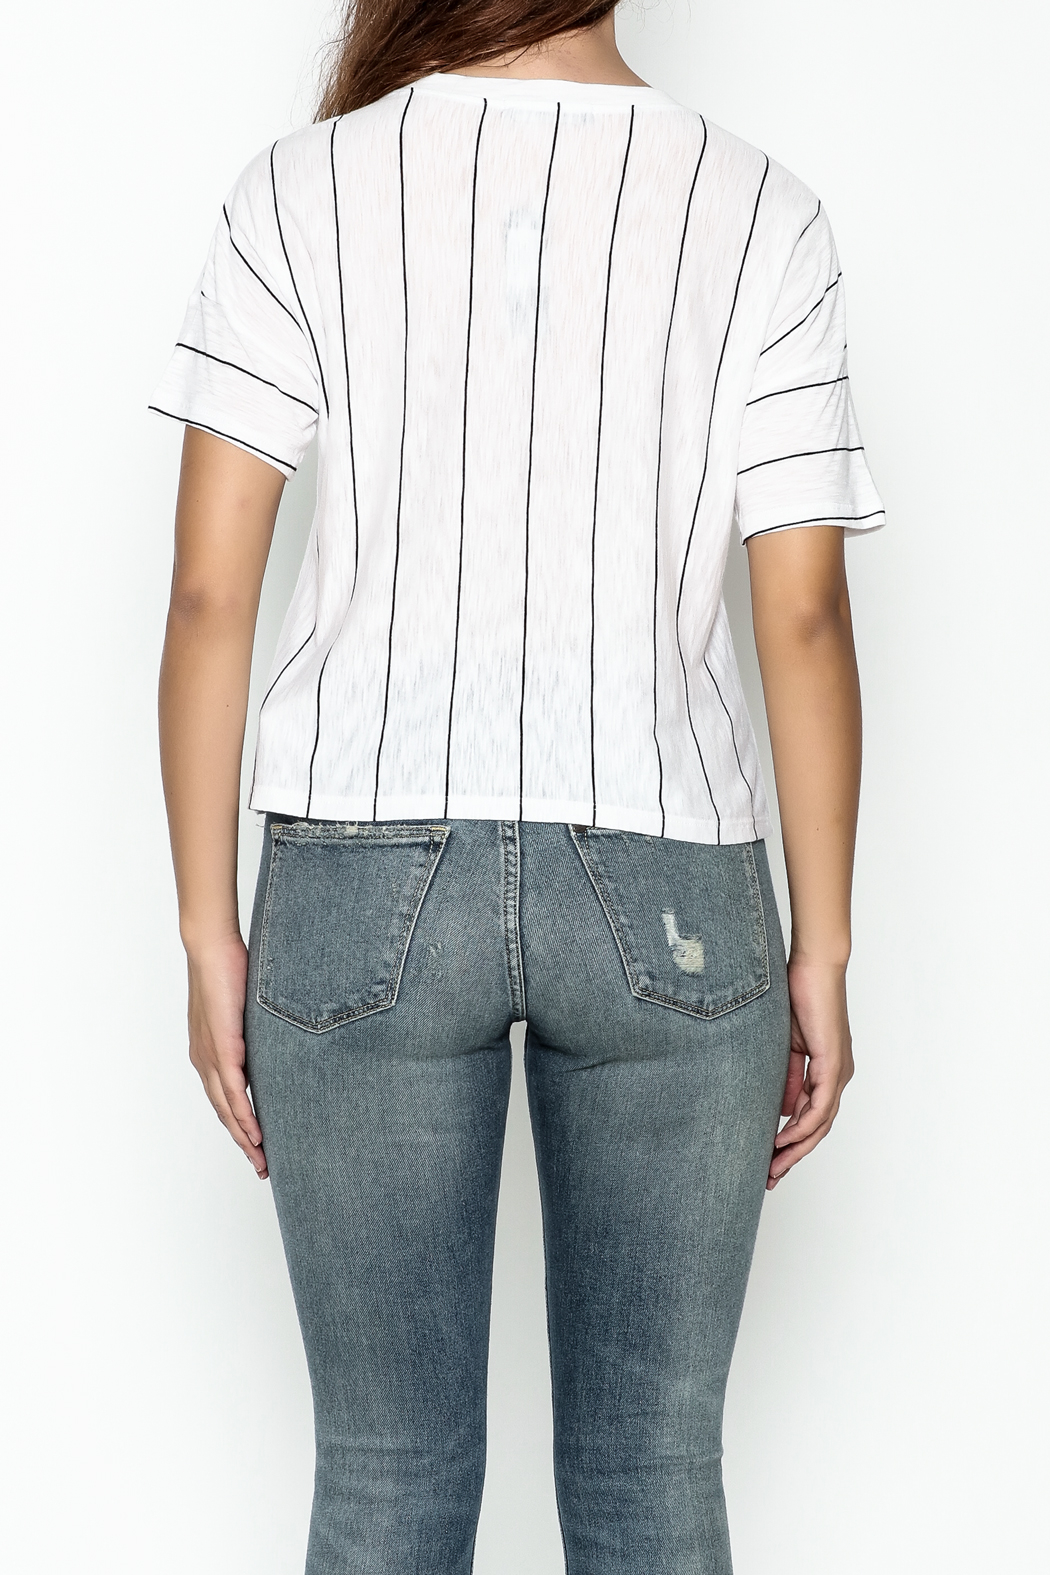 Michelle by Comune Striped Front Pocket Tee - Back Cropped Image